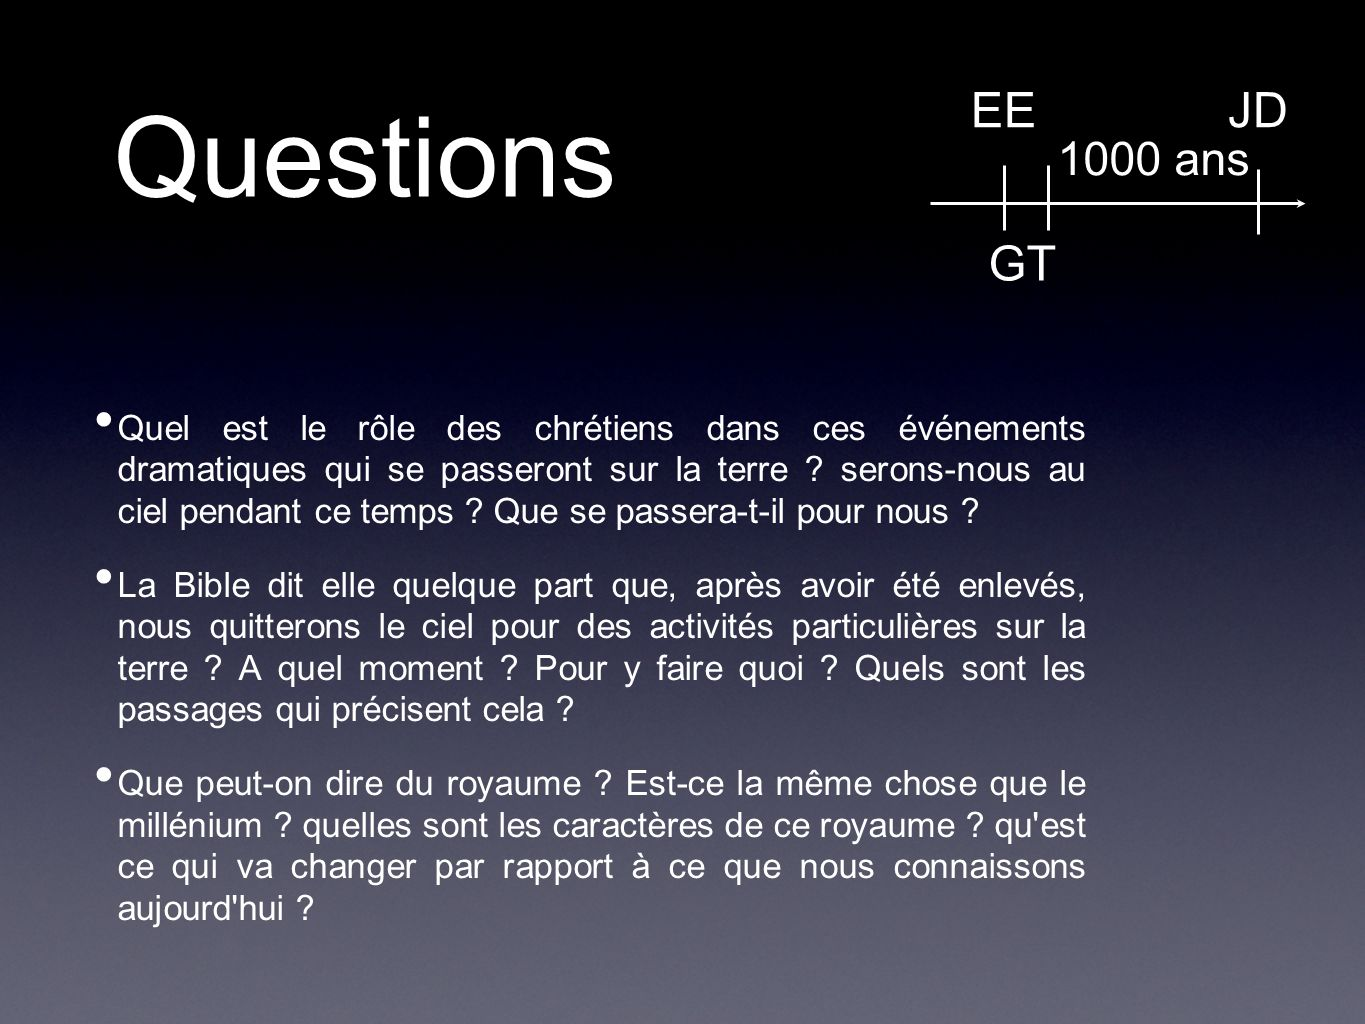 Questions EE. GT. 1000 ans. JD.